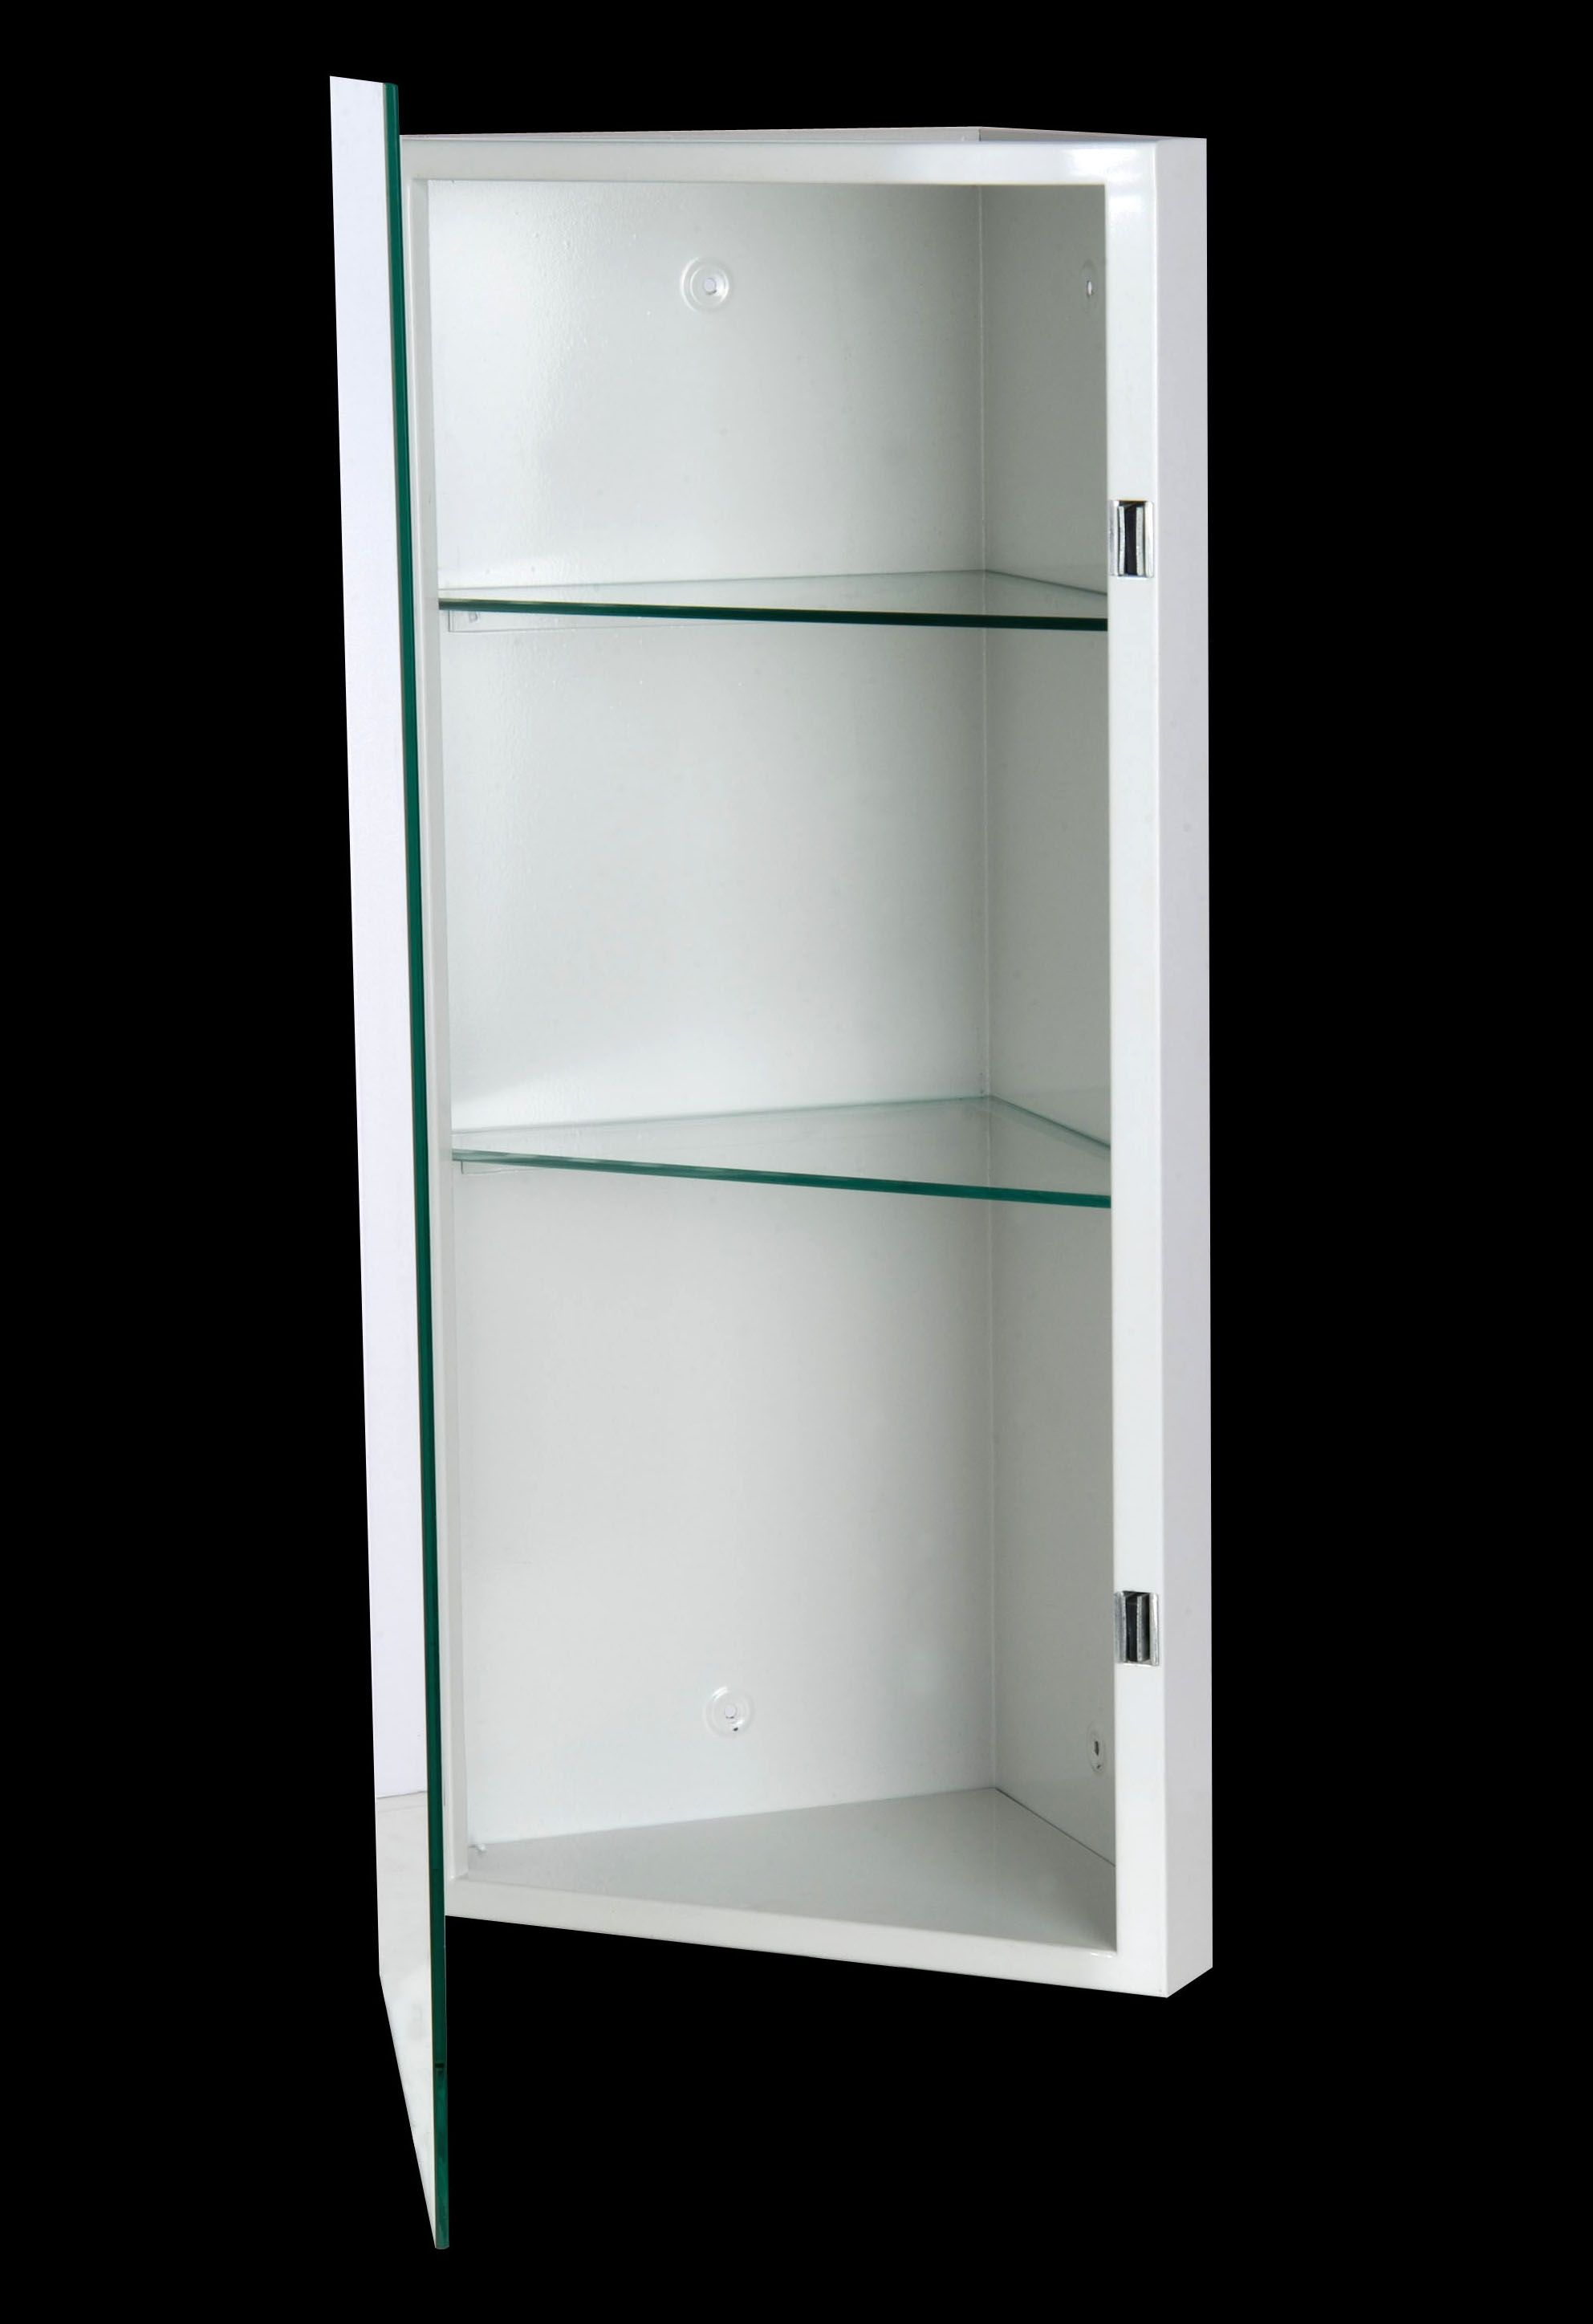 White Wooden Medicine Cabinet With Triangle Shape Having Shelves F Inside  Also Mirror On The Door